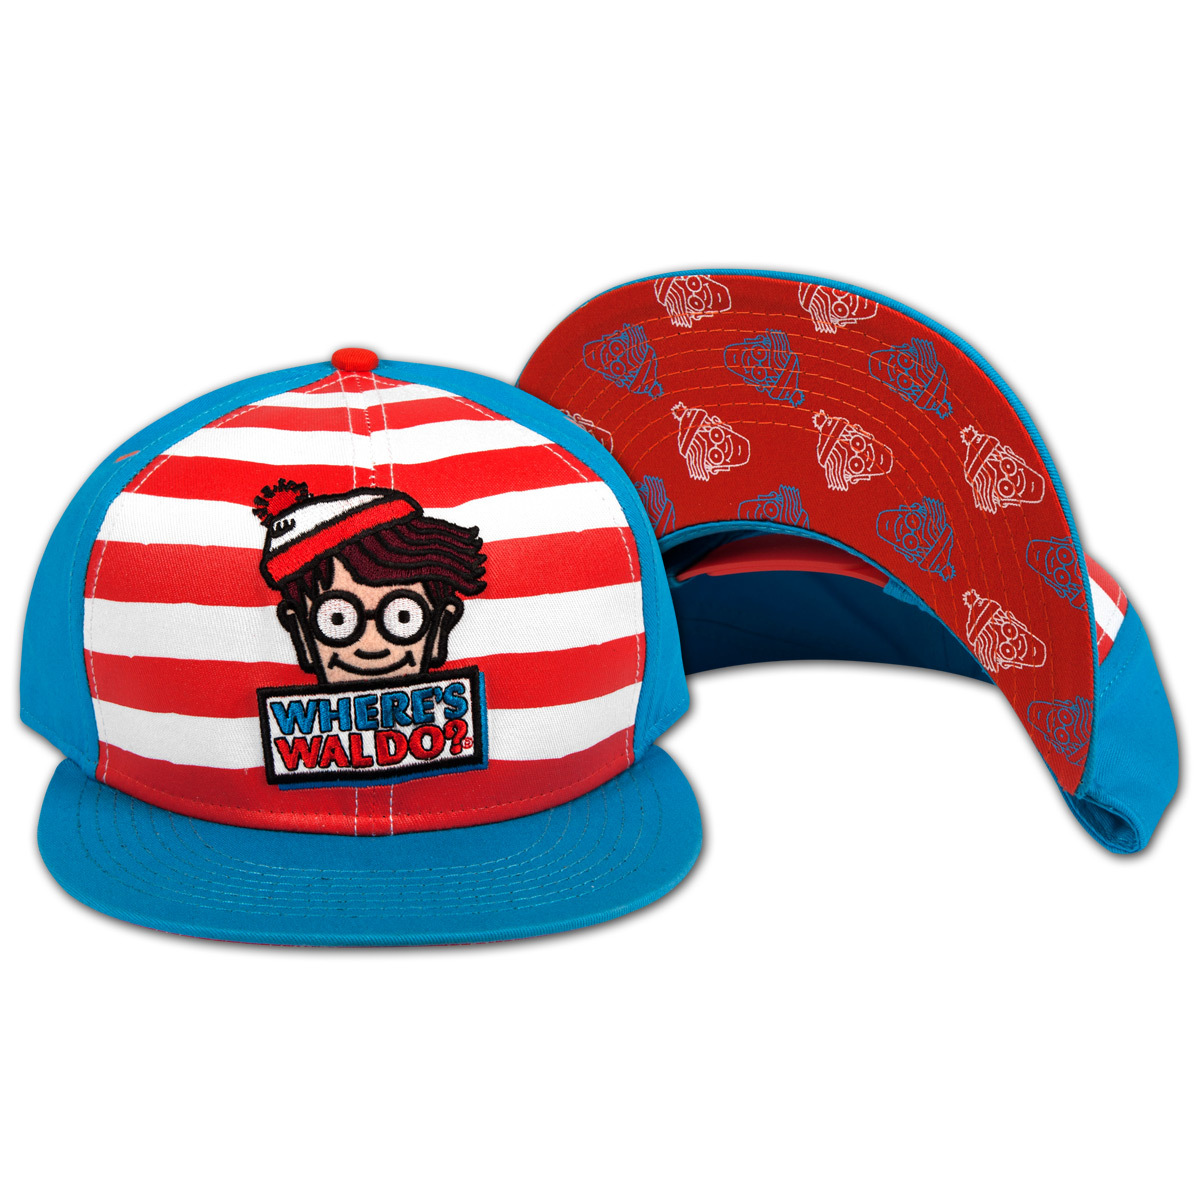 Where's Waldo? Logo Striped Adjustable Cap